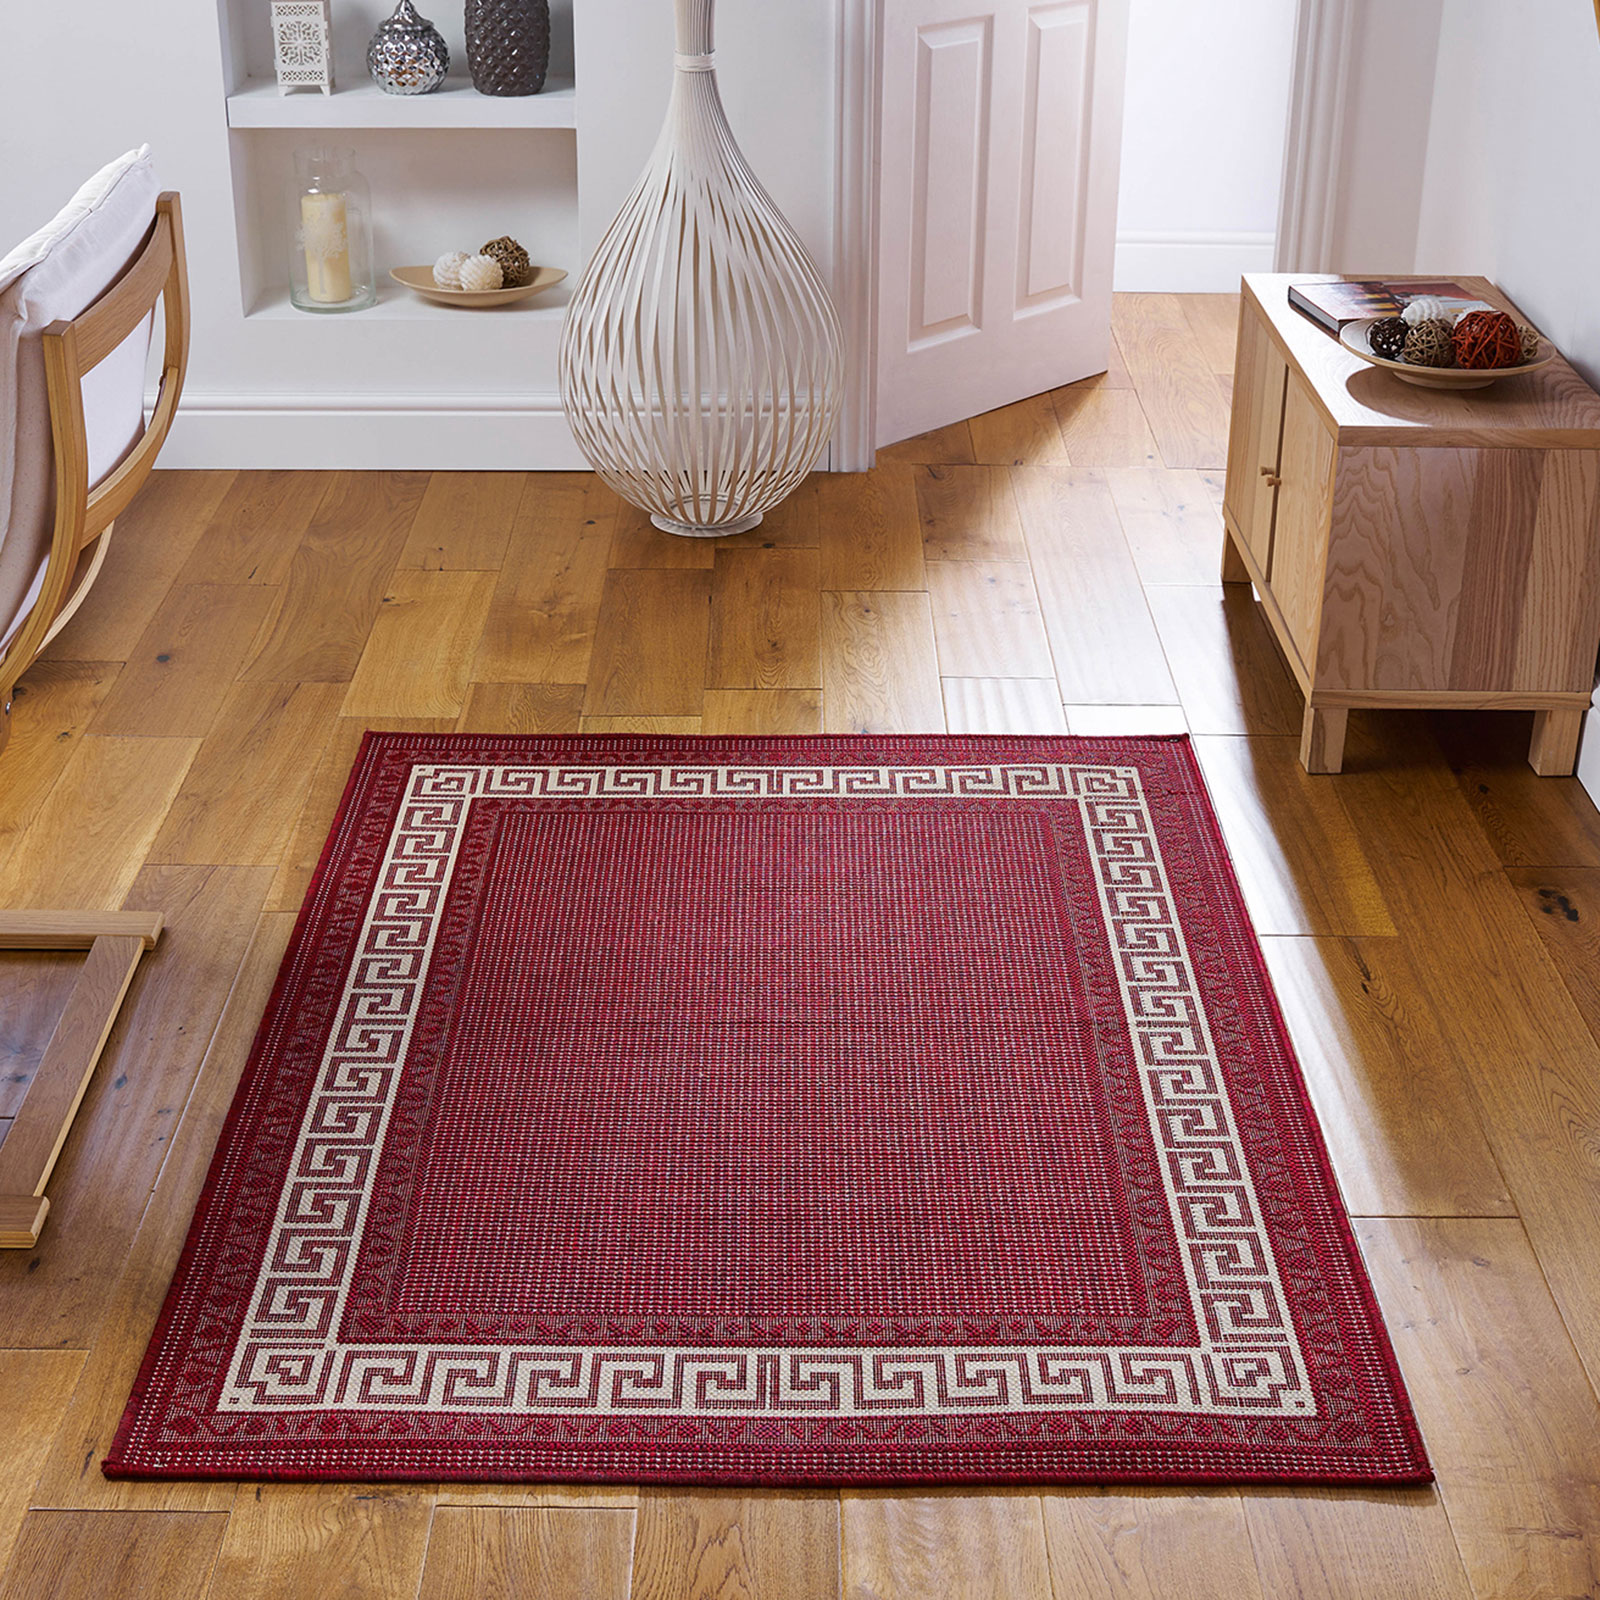 Greek-Key-Flatweave-Red-Roomshot.jpg